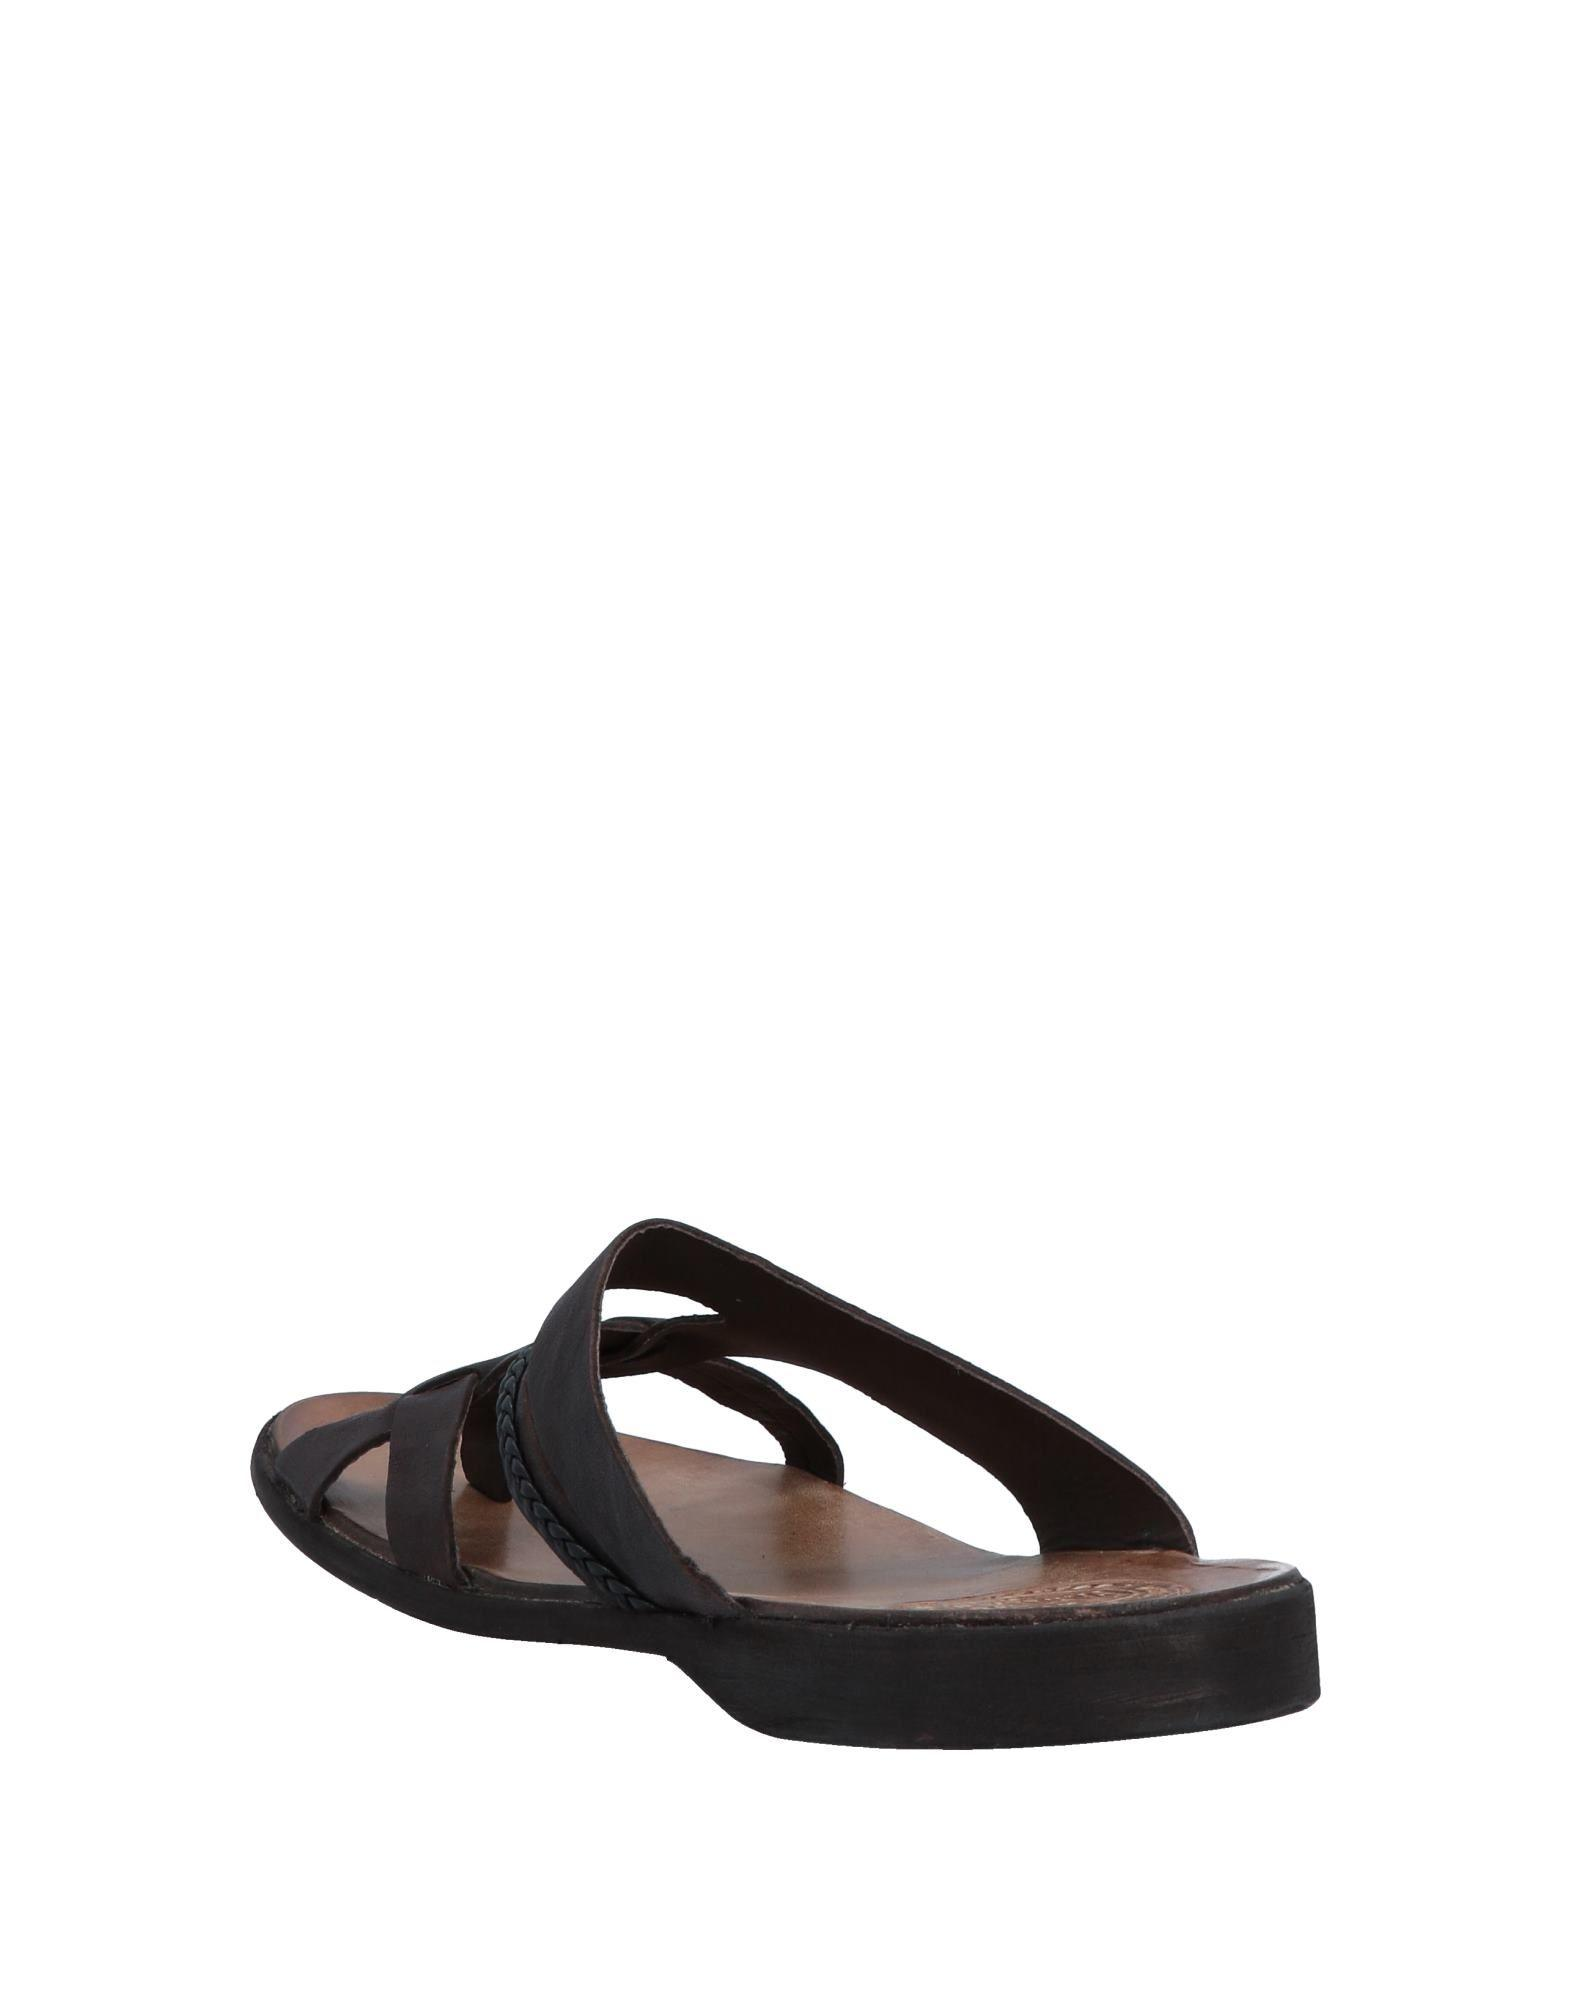 6fb84b9326a Pawelk S Toe Strap Sandal in Brown for Men - Lyst